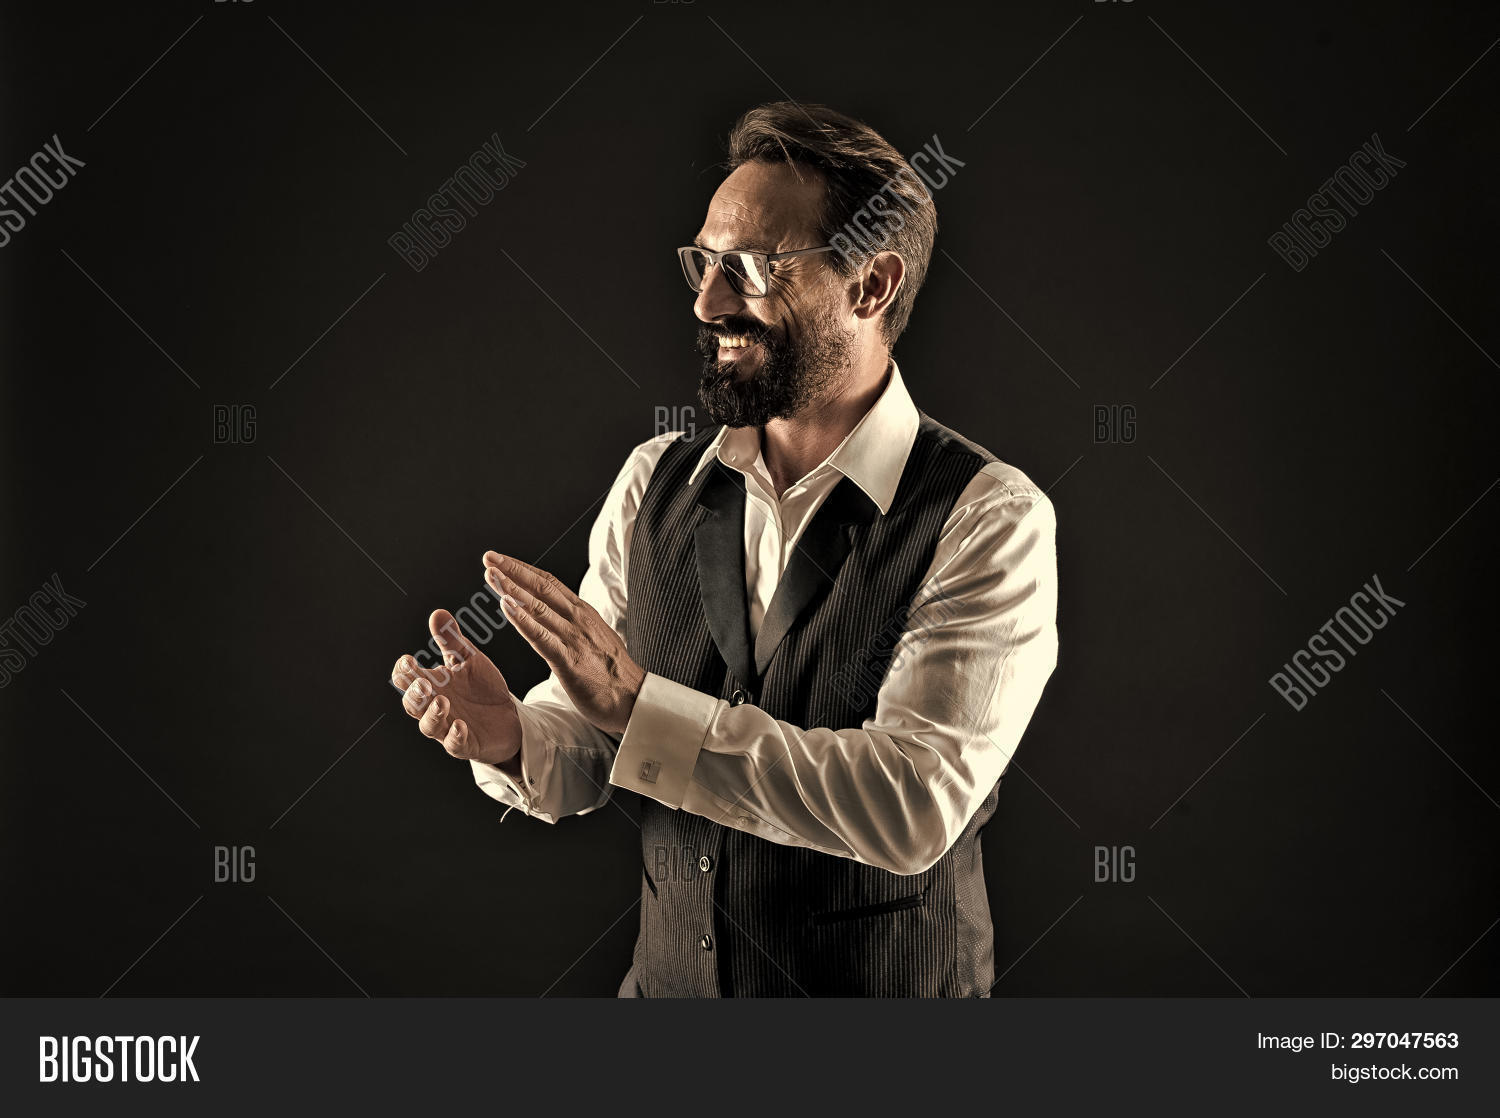 about,adult,applause,approve,background,beard,bearded,black,boss,bravo,broker,business,businessman,ceo,clap,classic,clothing,conference,confident,convention,director,elegant,employer,excited,experienced,formal,genius,groomed,hand,handsome,hipster,loud,man,manager,mature,mustache,project,something,speaker,success,successful,suit,tips,unshaven,well